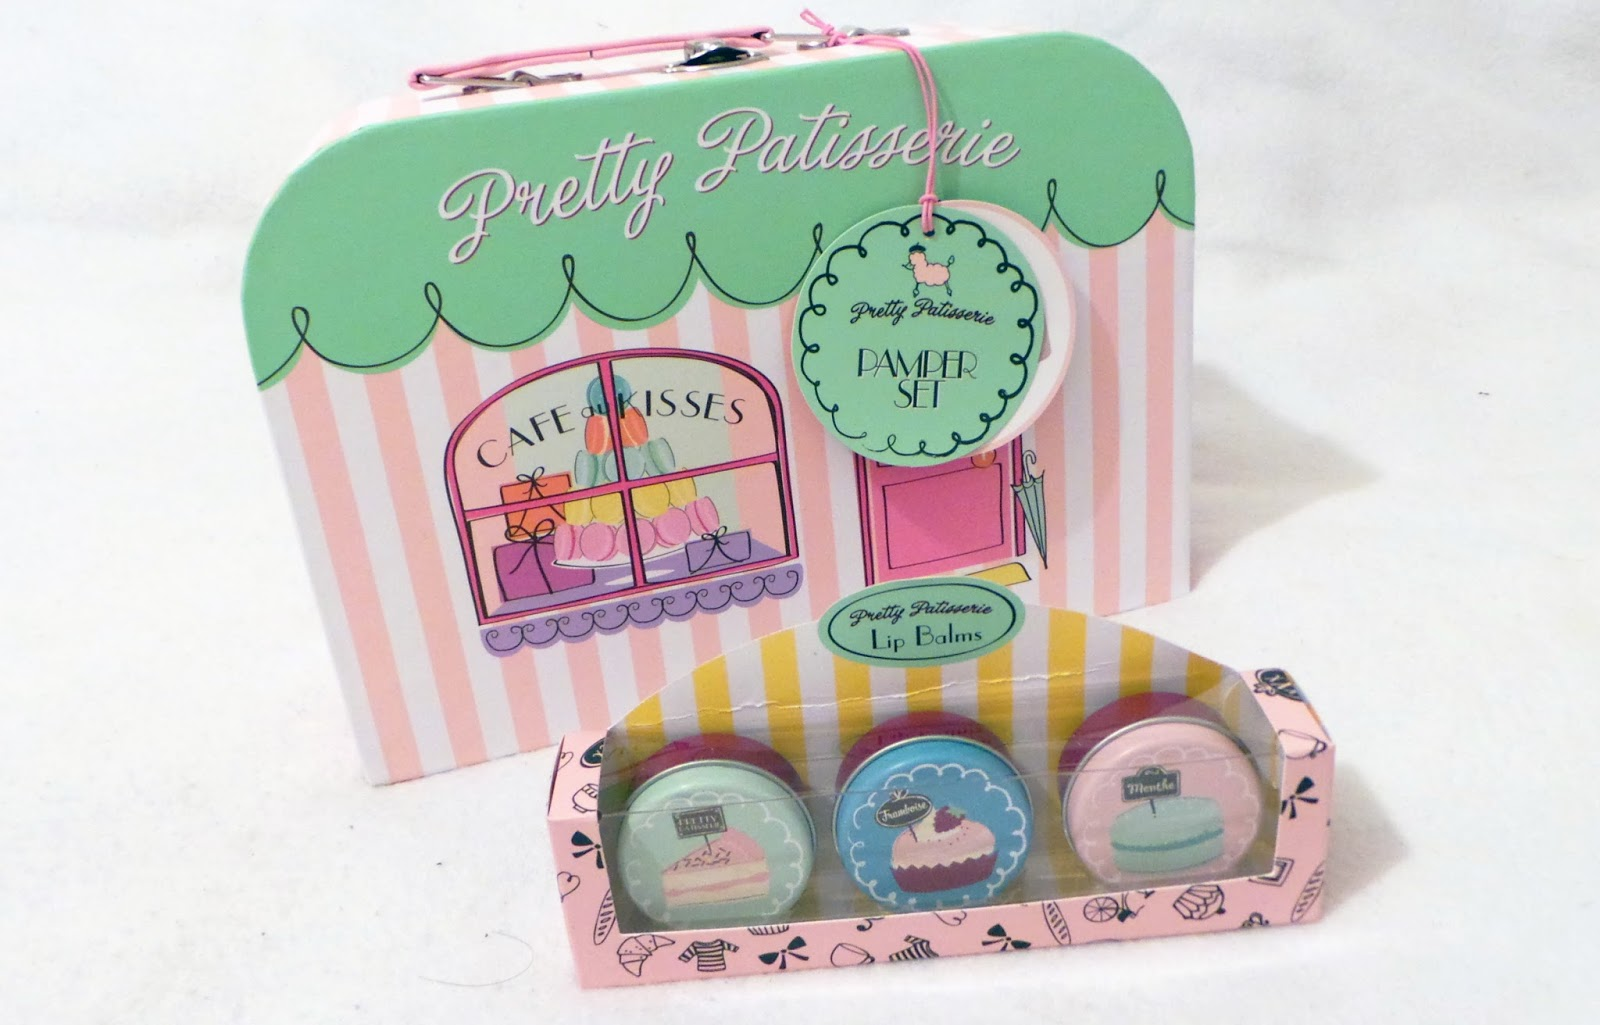 birthday haul blog post - Pretty Patisserie Pamper Set & Lip Balm Boots